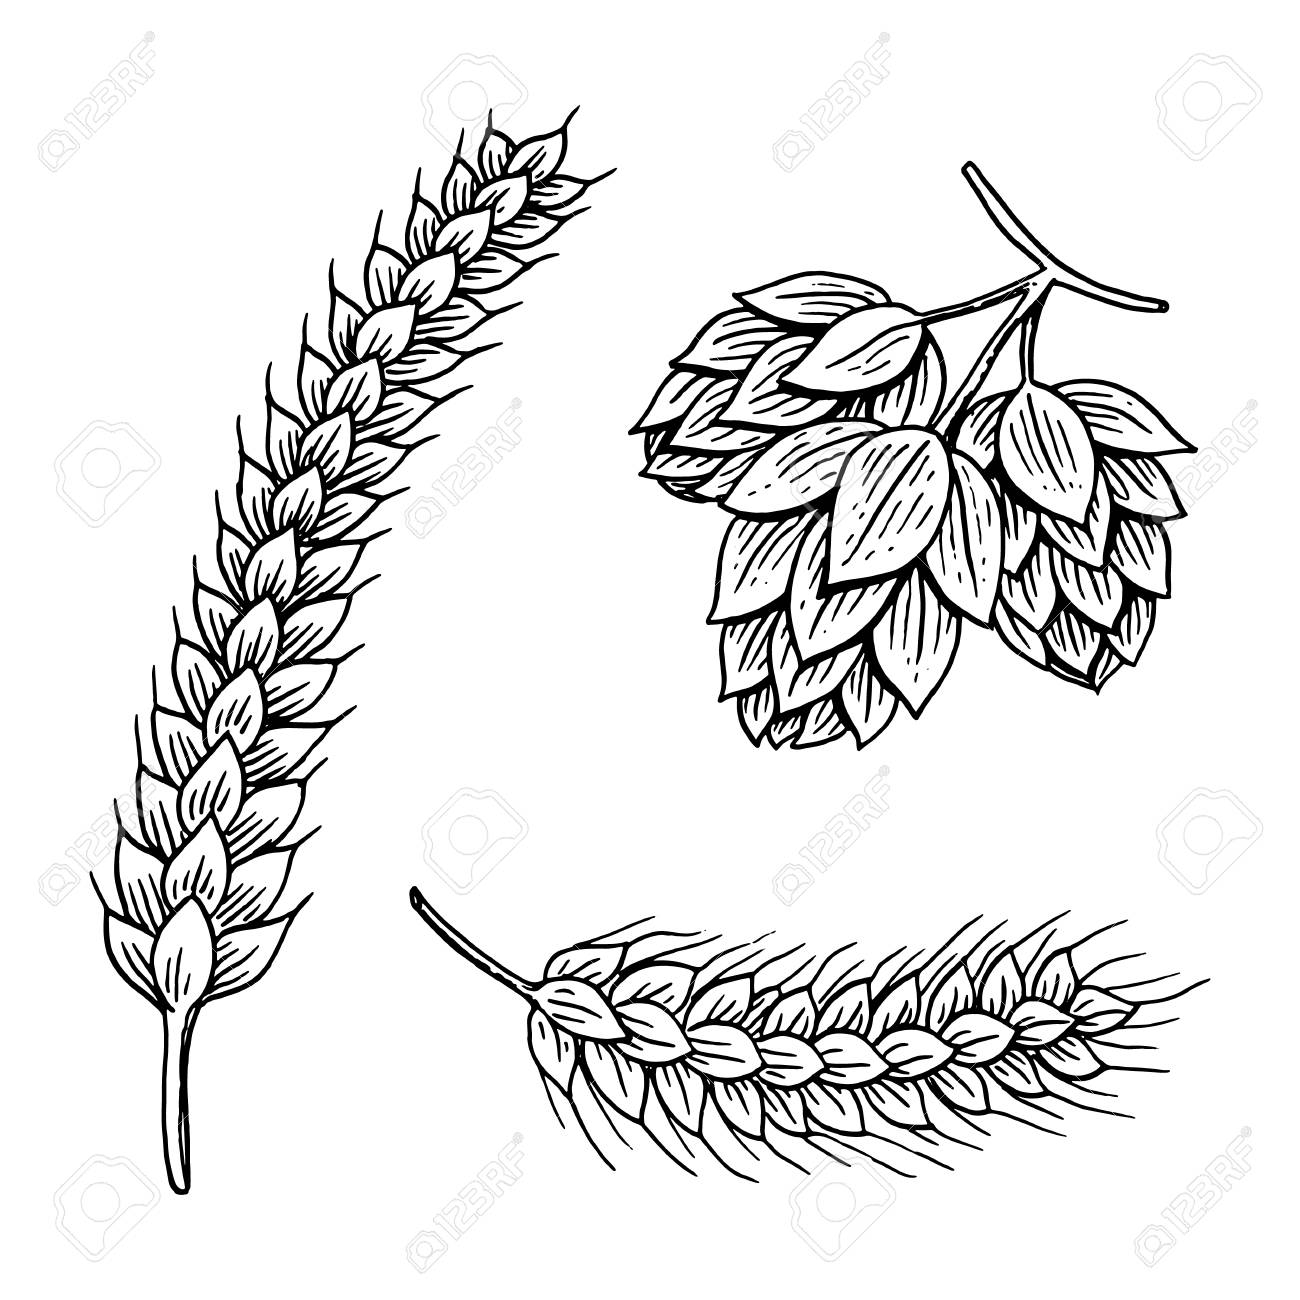 1300x1300 Barley And Wheat, Malt And Hops. Beer Of Oktoberfest. Engraved